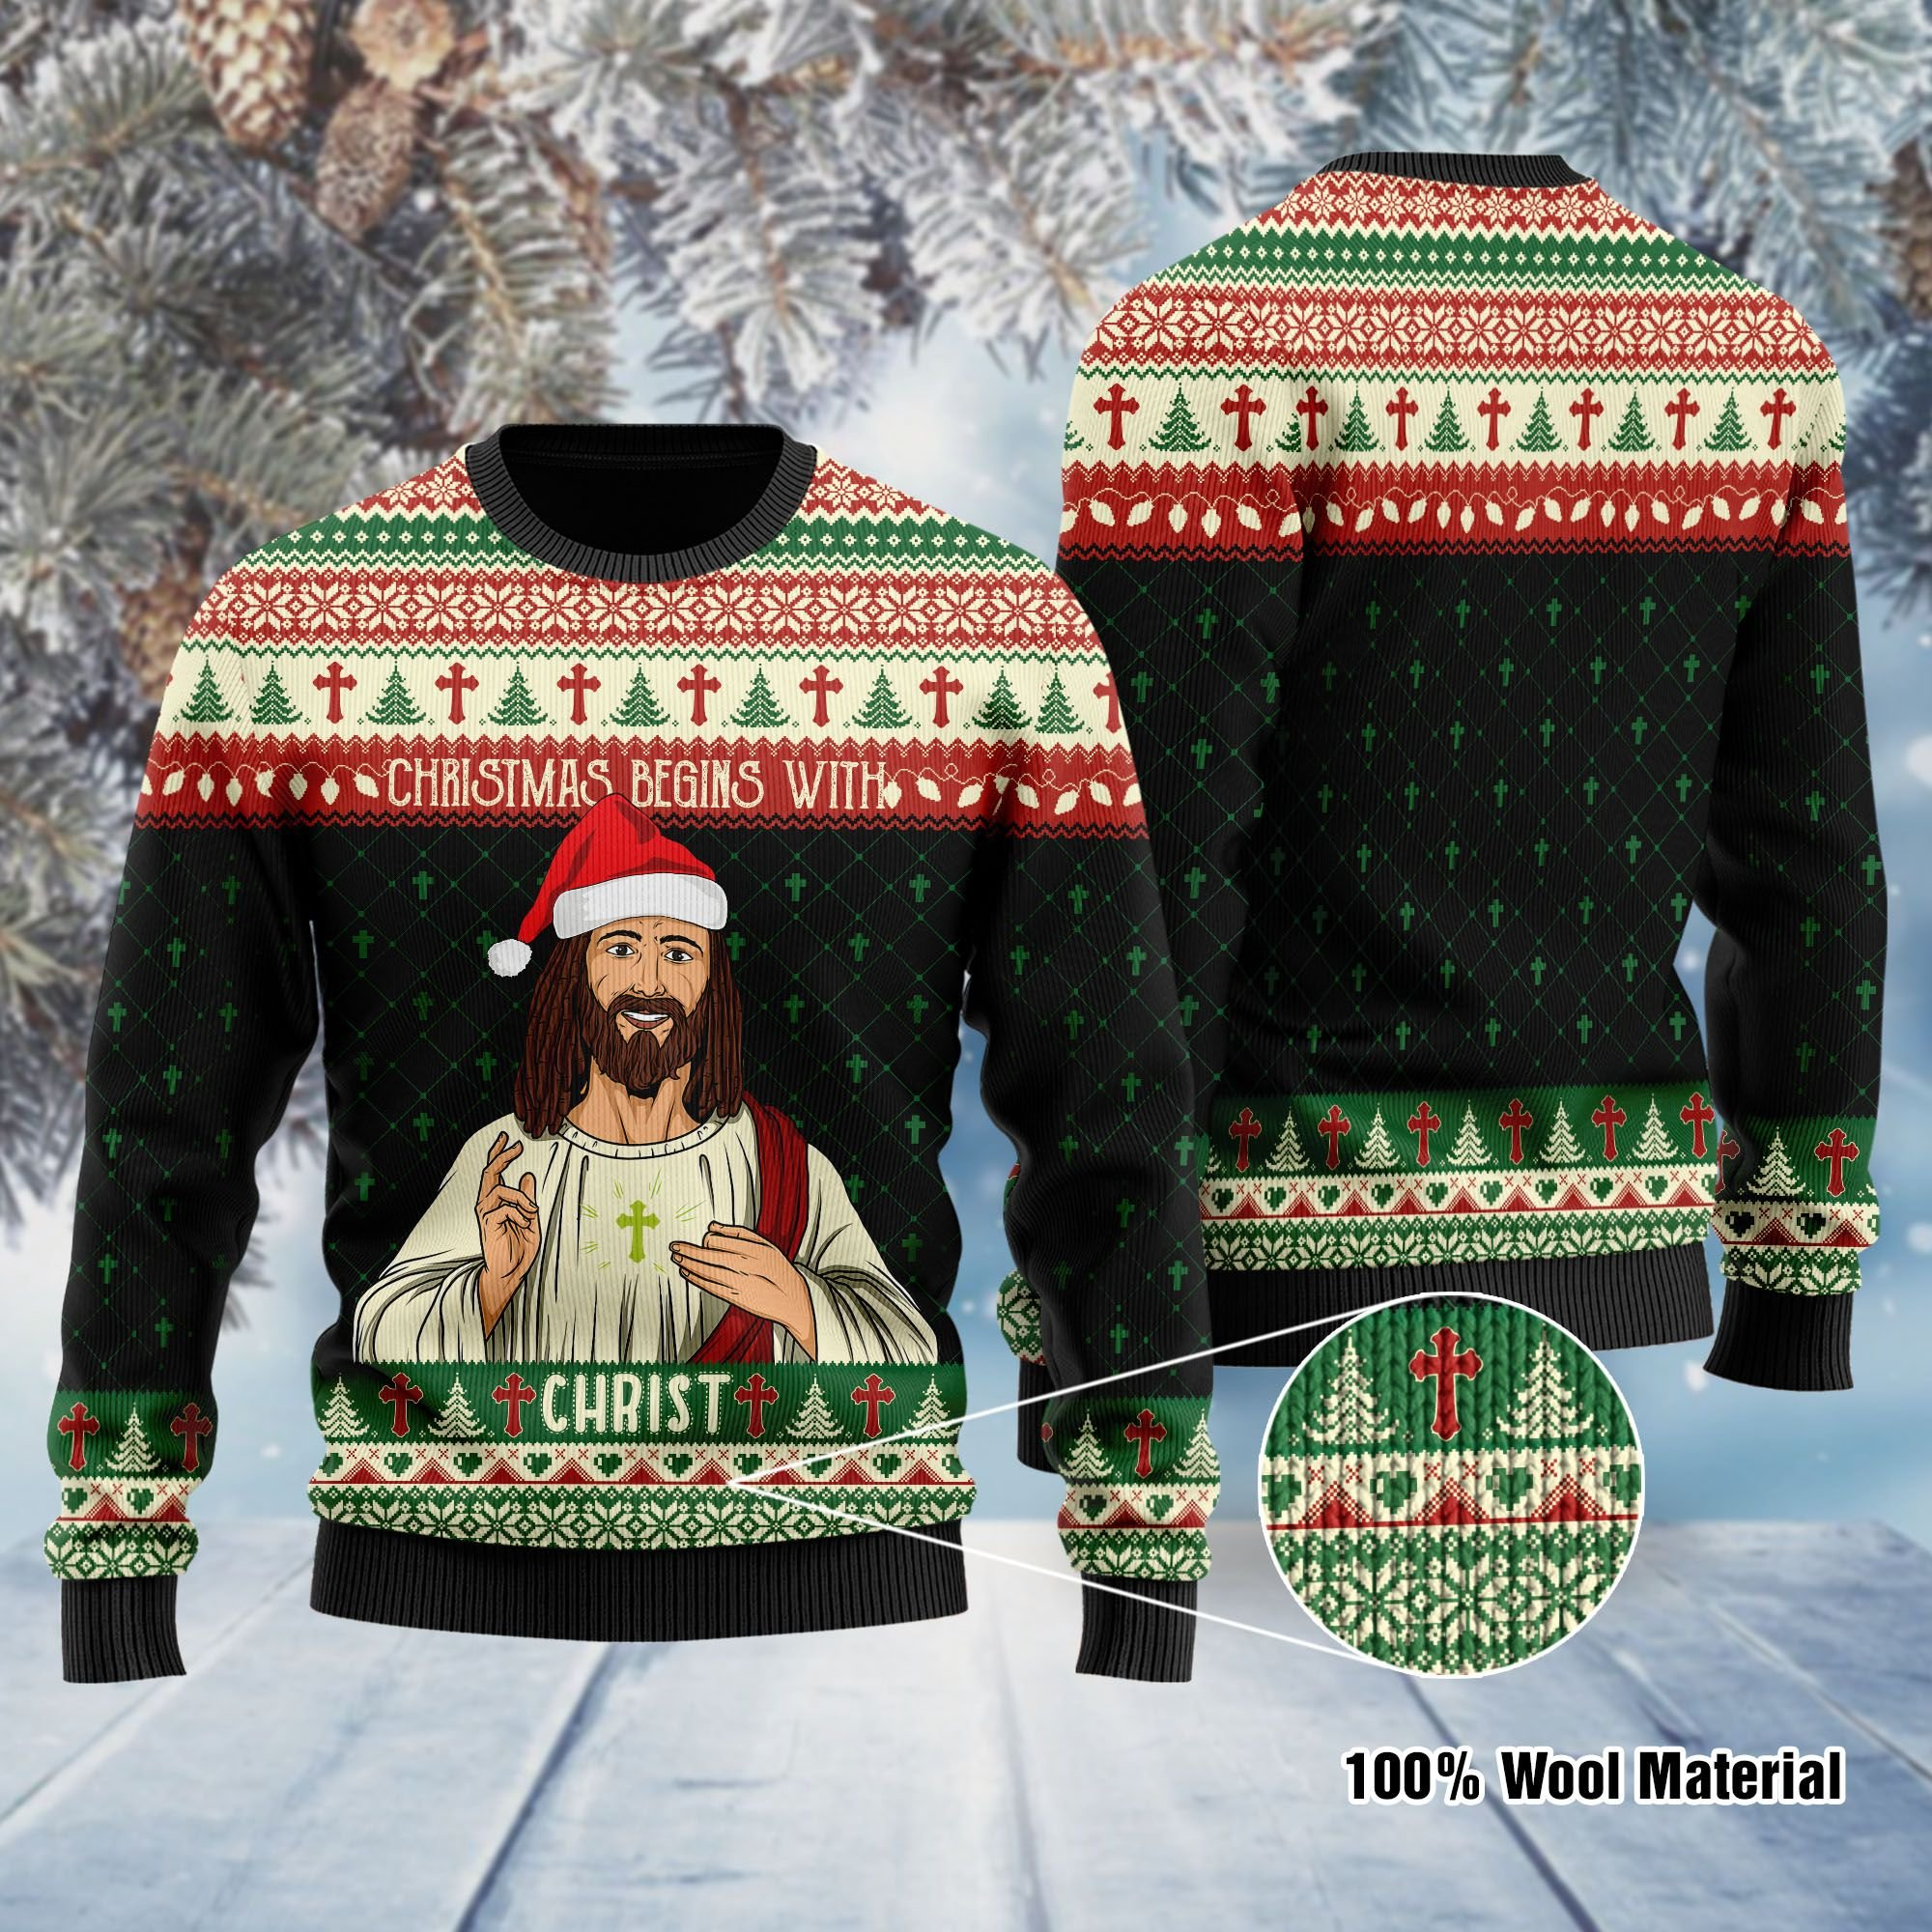 Christmas Begins With Christ Jesus Ugly Sweater